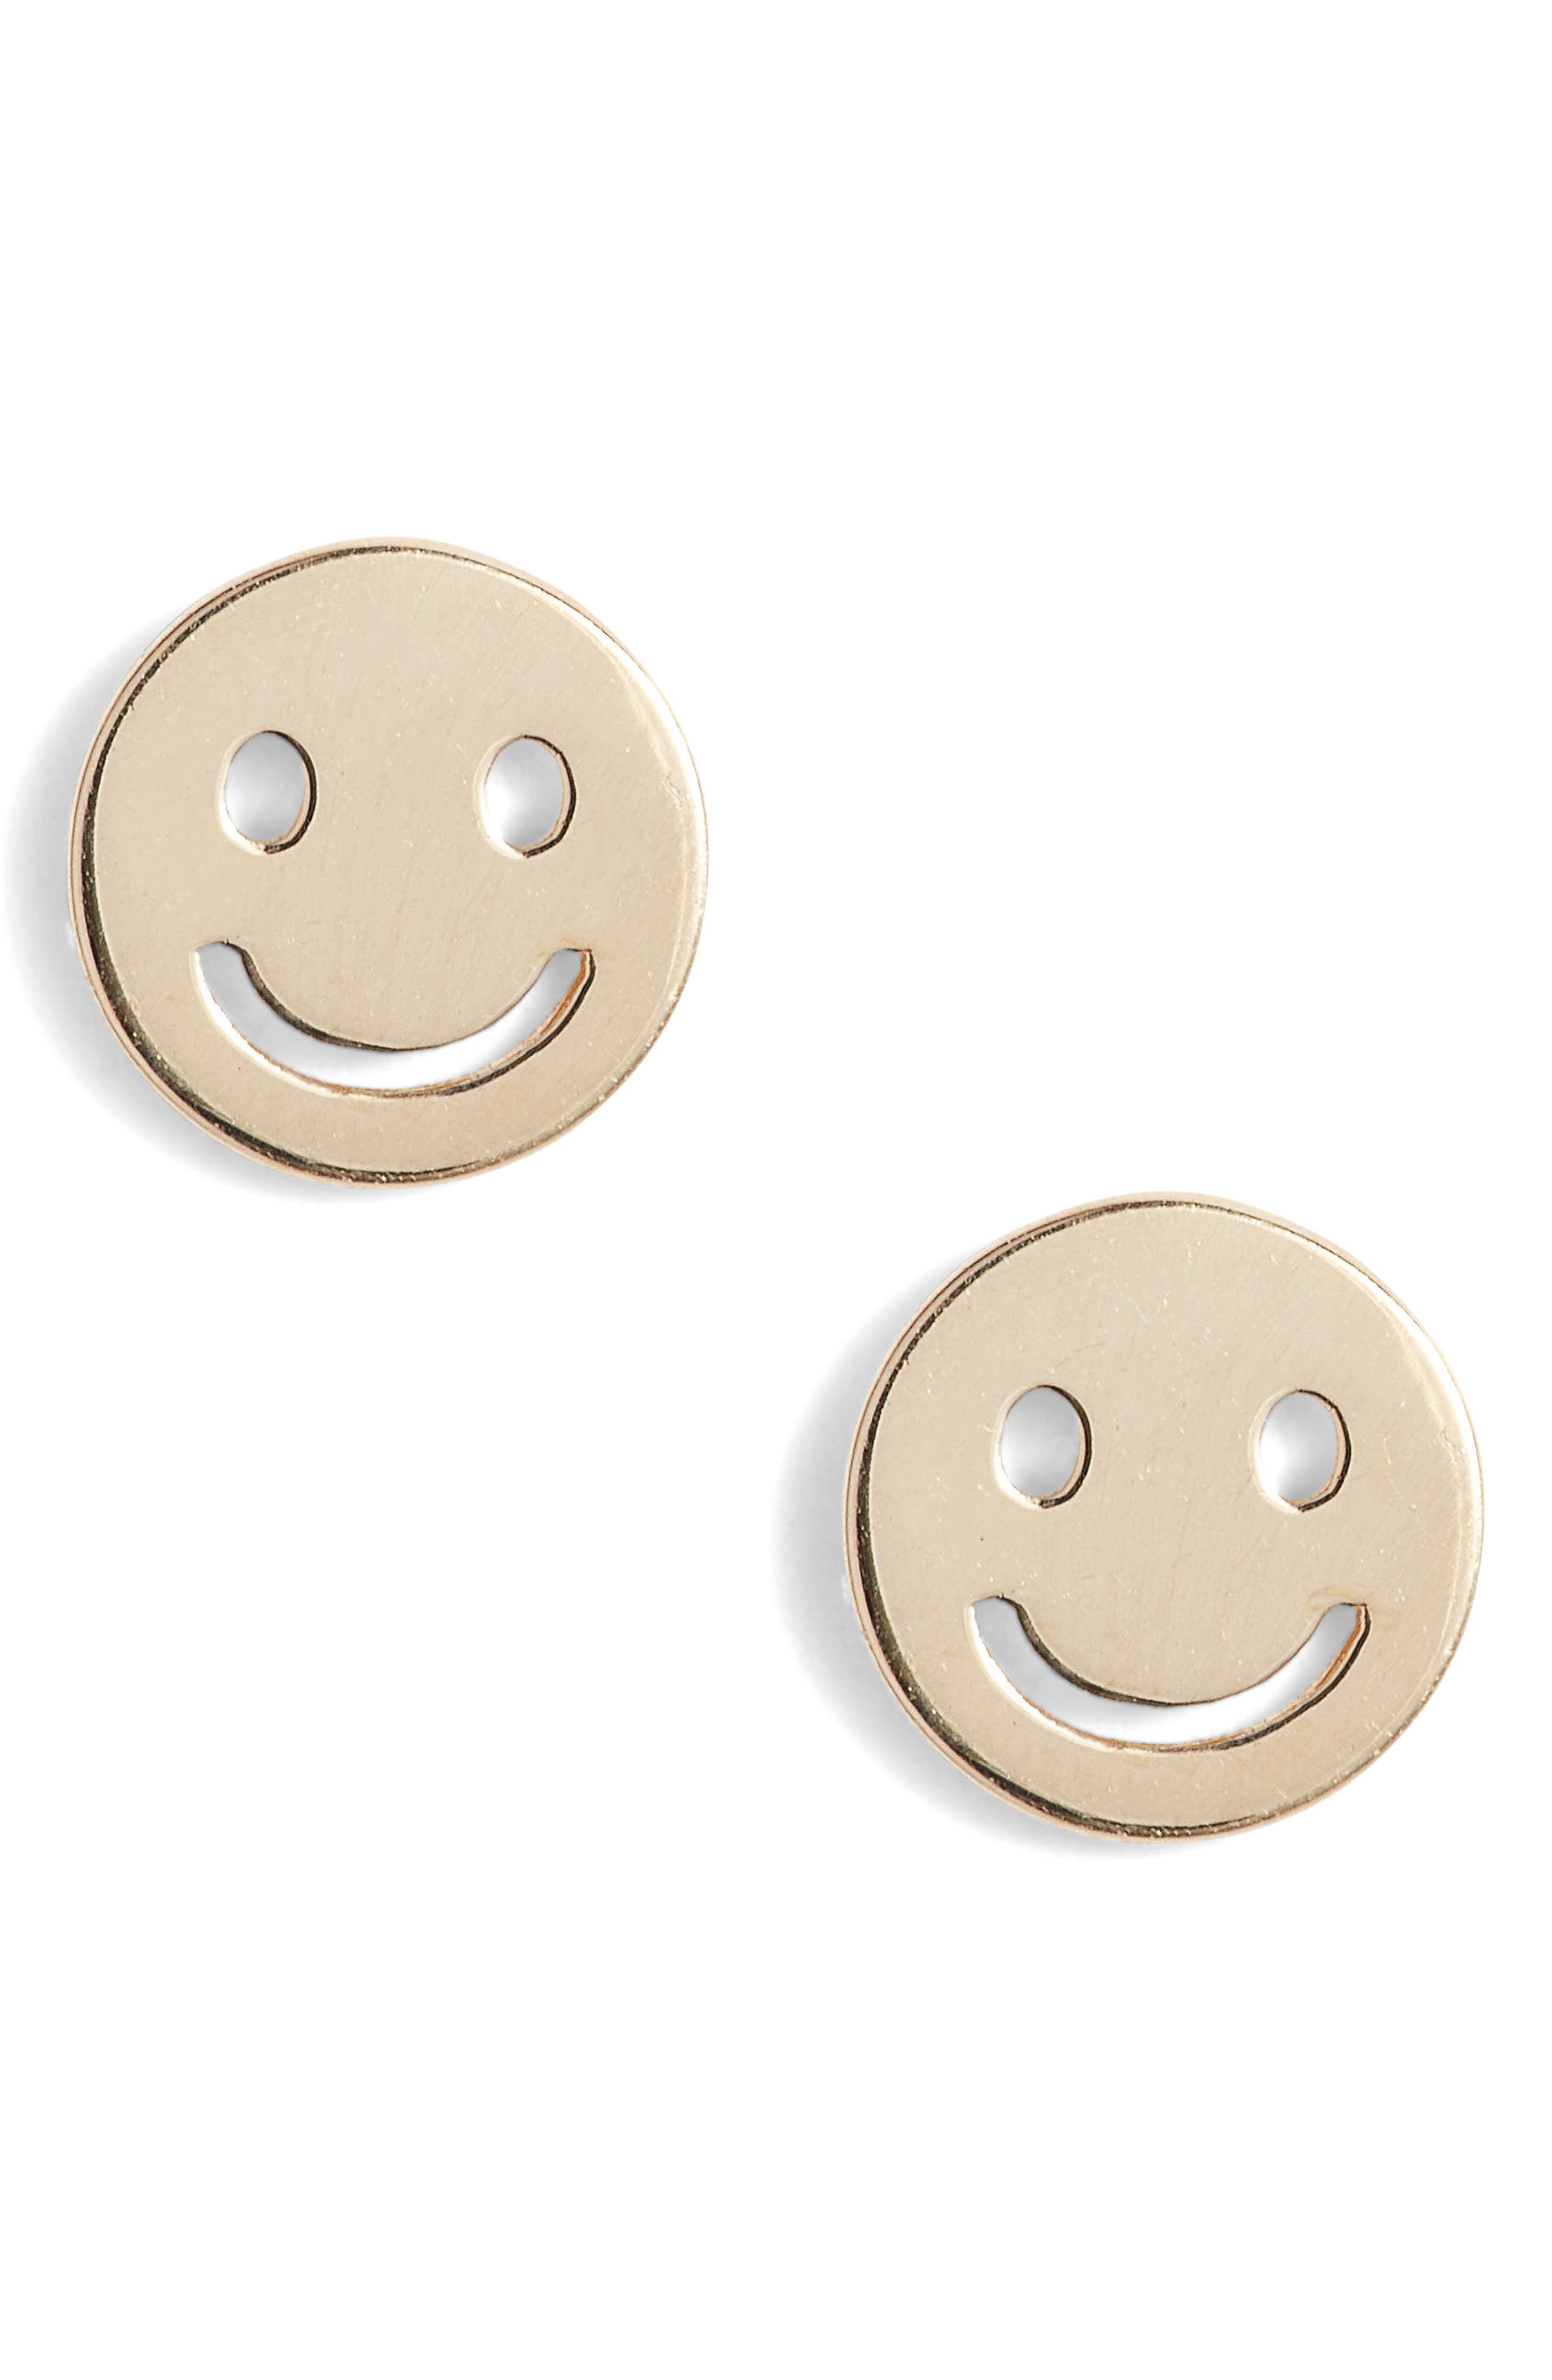 Smiley Face Stud Earrings,                             Main thumbnail 1, color,                             Yellow Gold